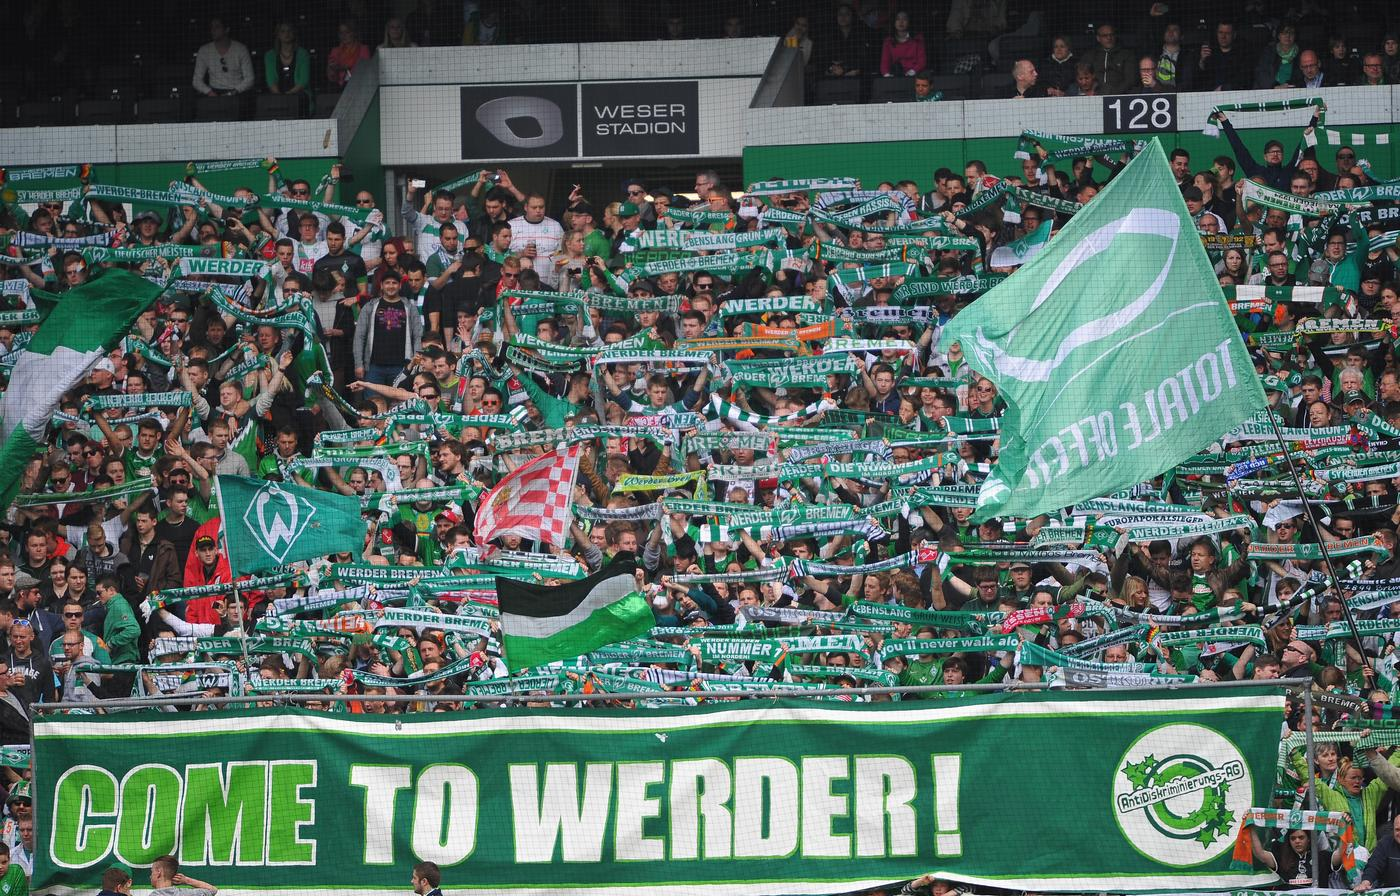 Watch brilliant Werder Bremen away fans sing 'Wonderwall' away at West Ham